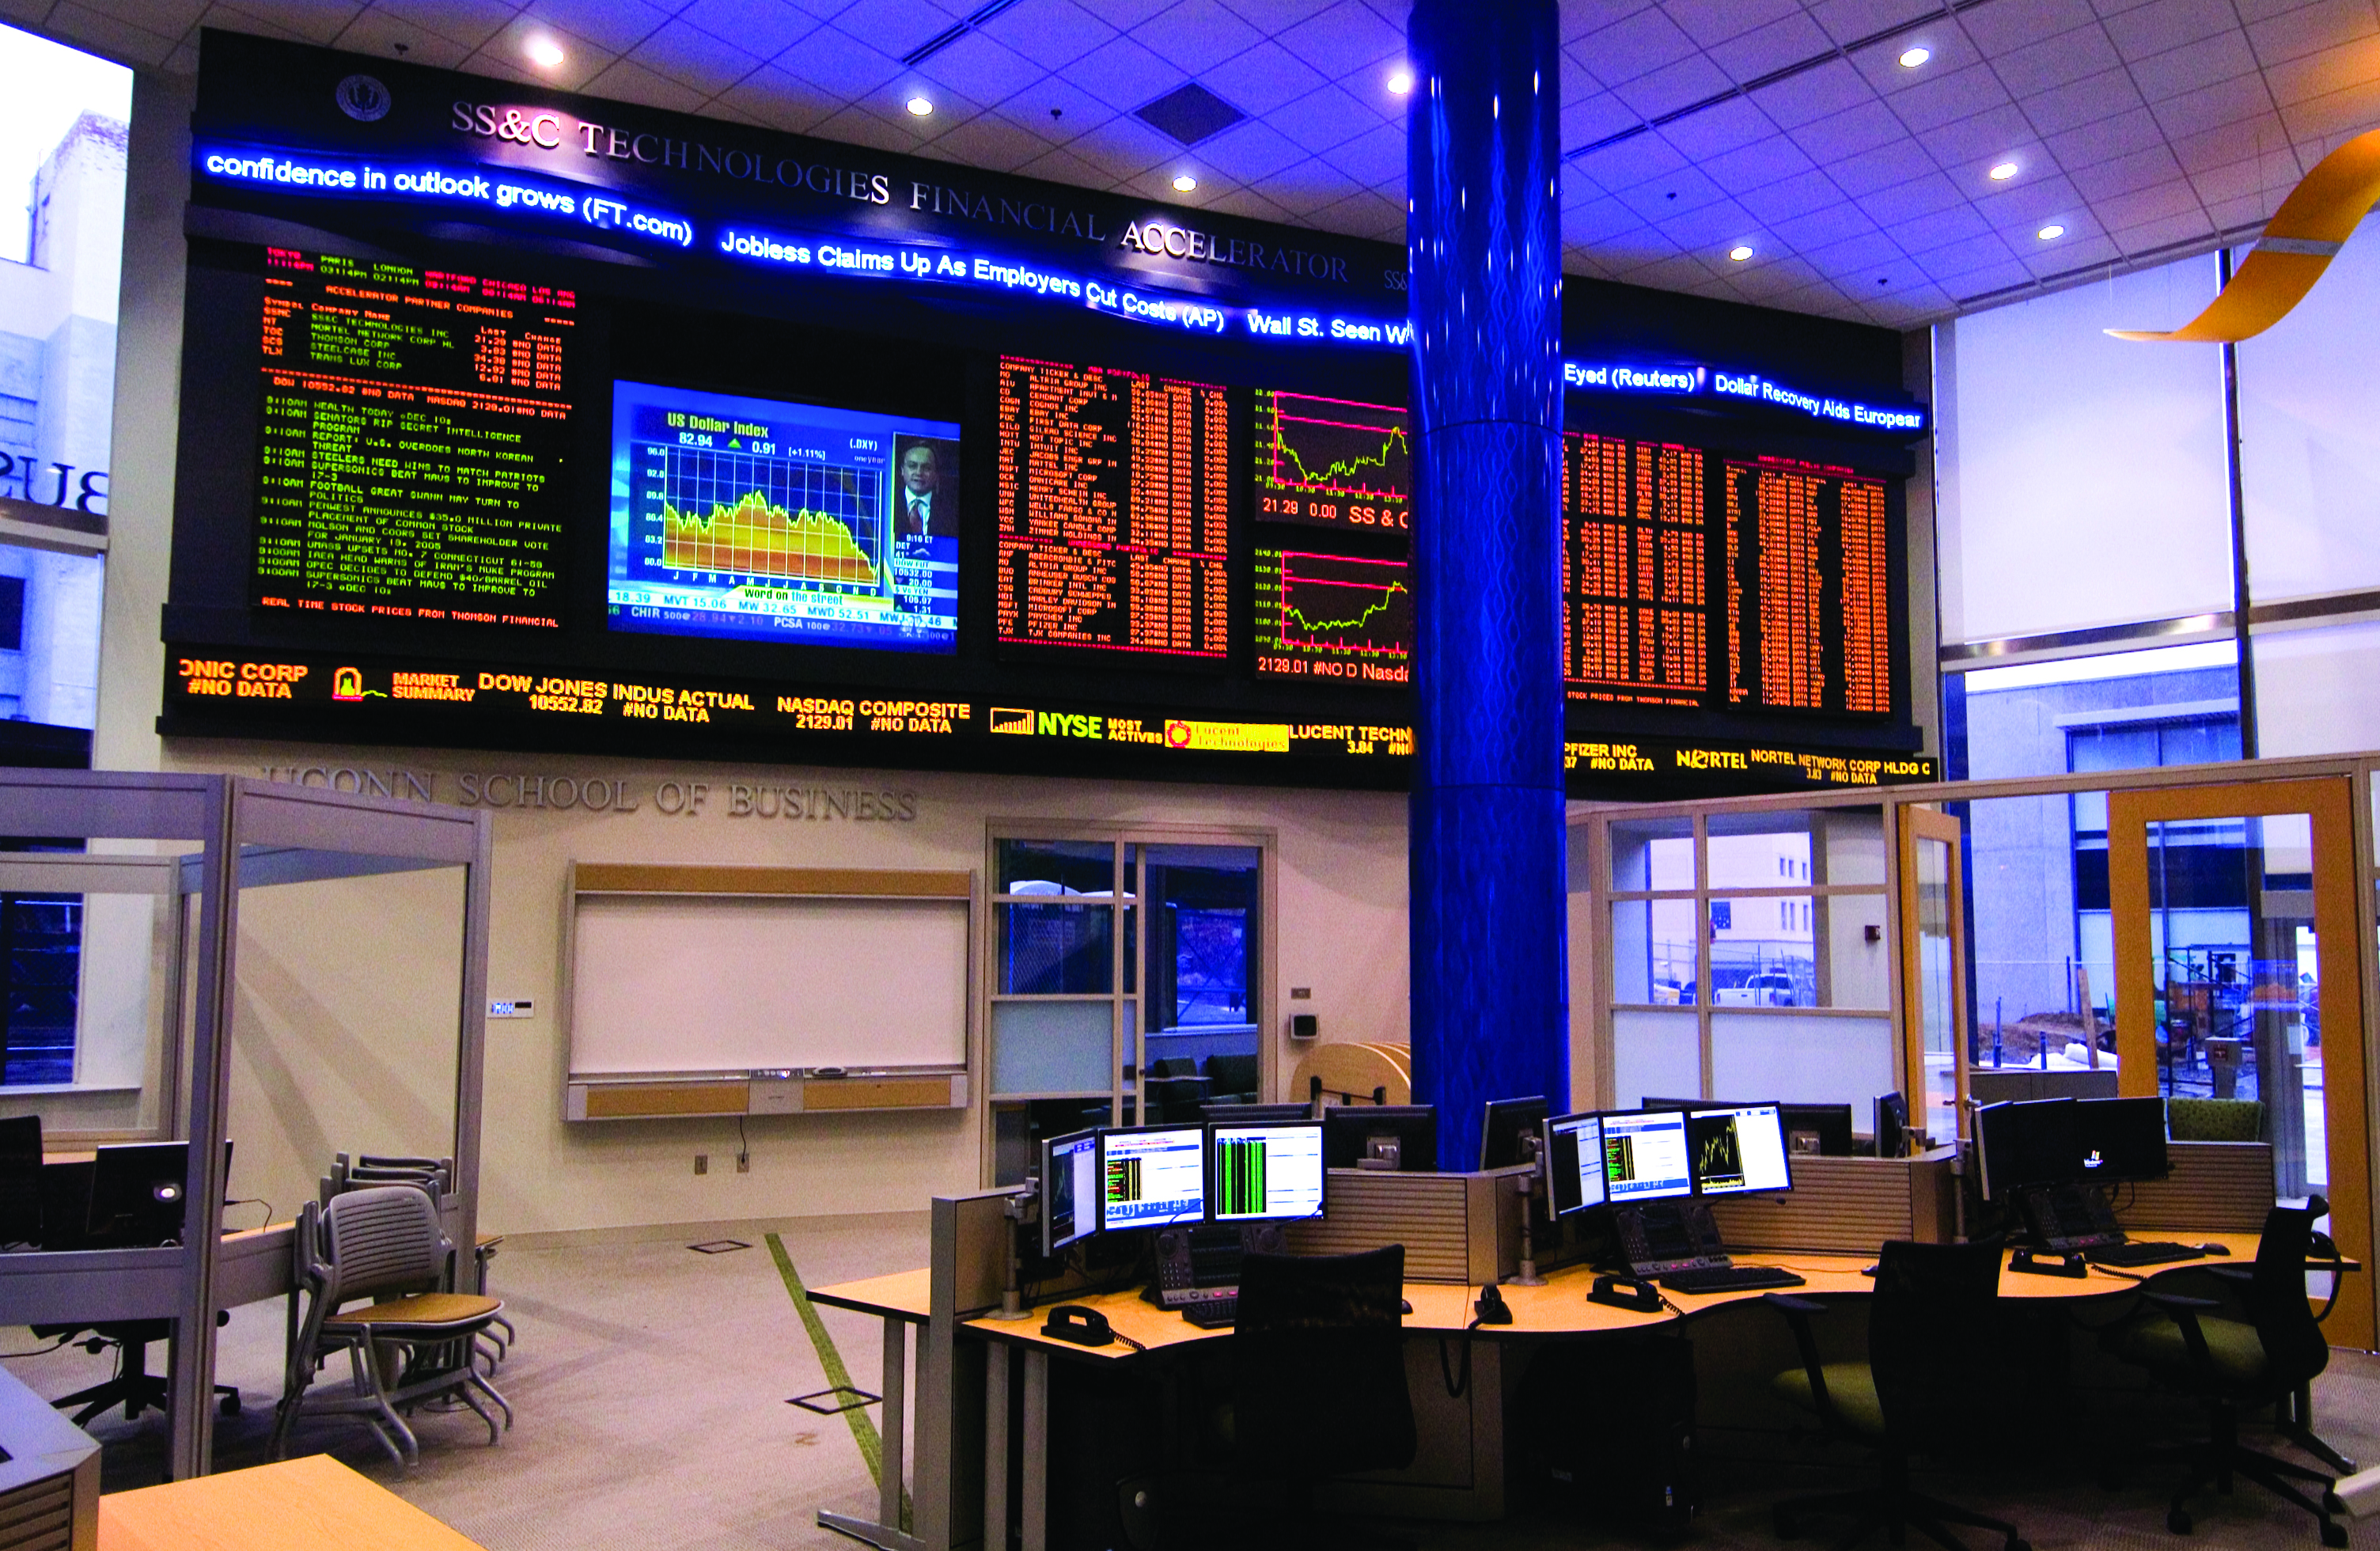 inside the gblc